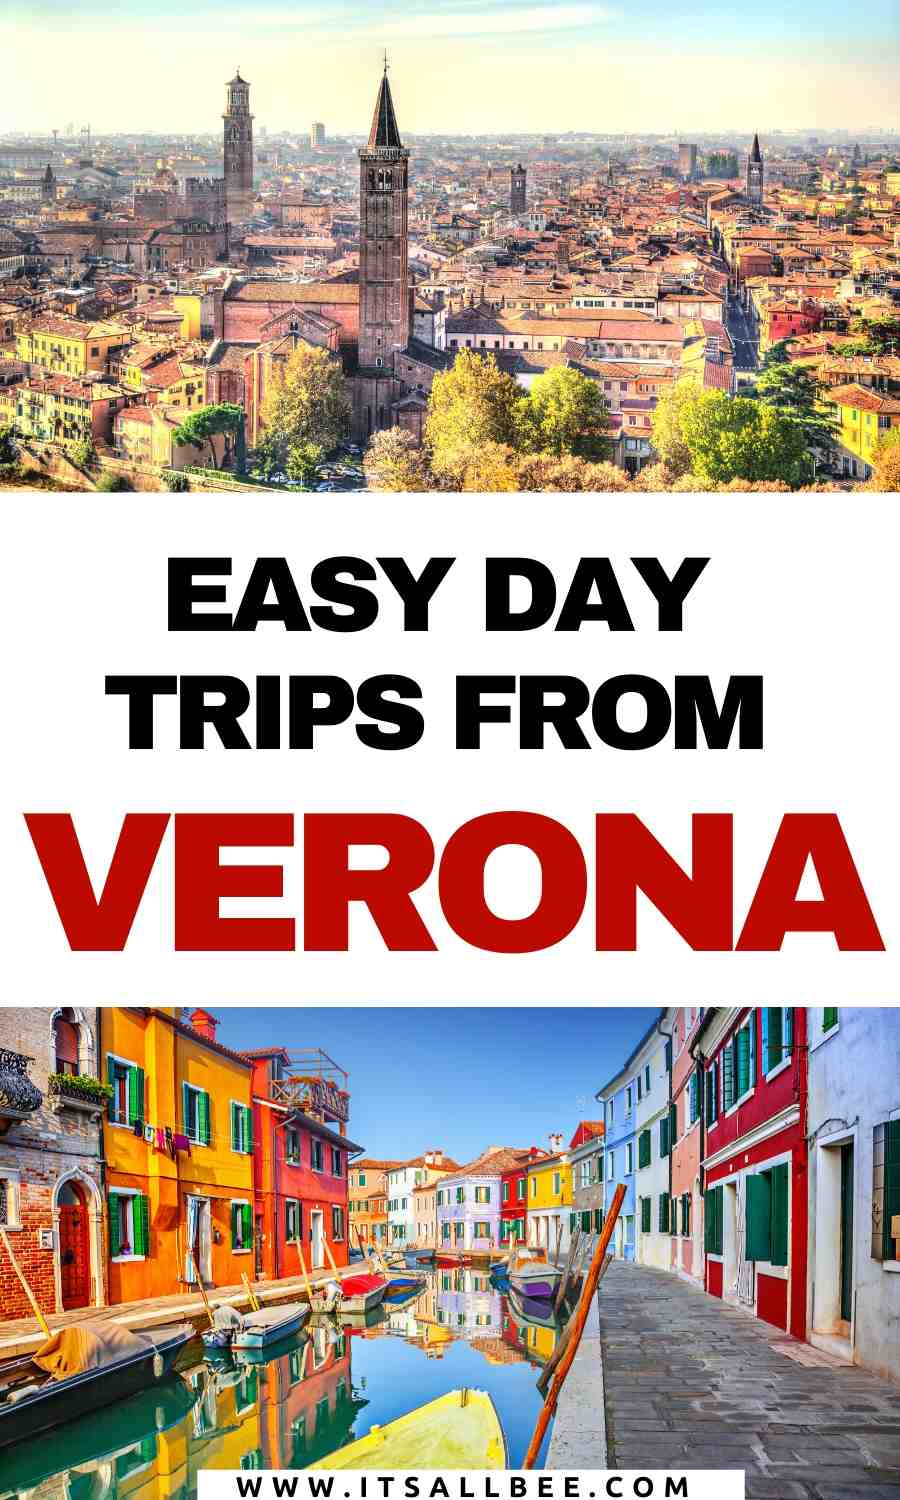 day trips from verona by train